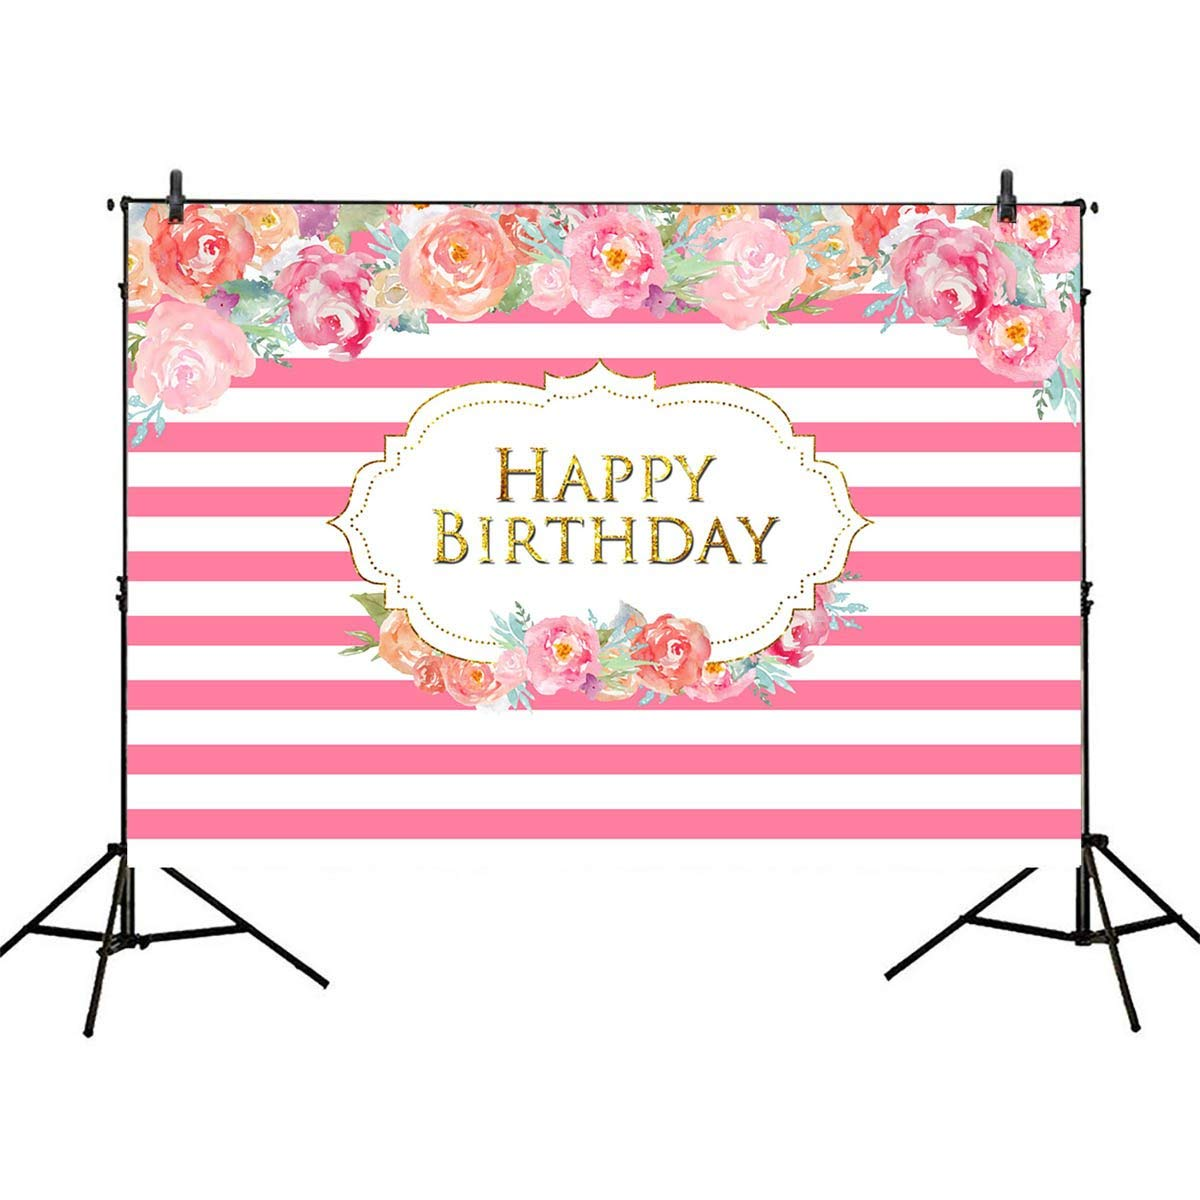 Mehofoto Birthday Backdrop for Party Pink White Stripes Photography Background 7x5ft Water Flower Photo Backdrop for Girl Birthday Banner Prop